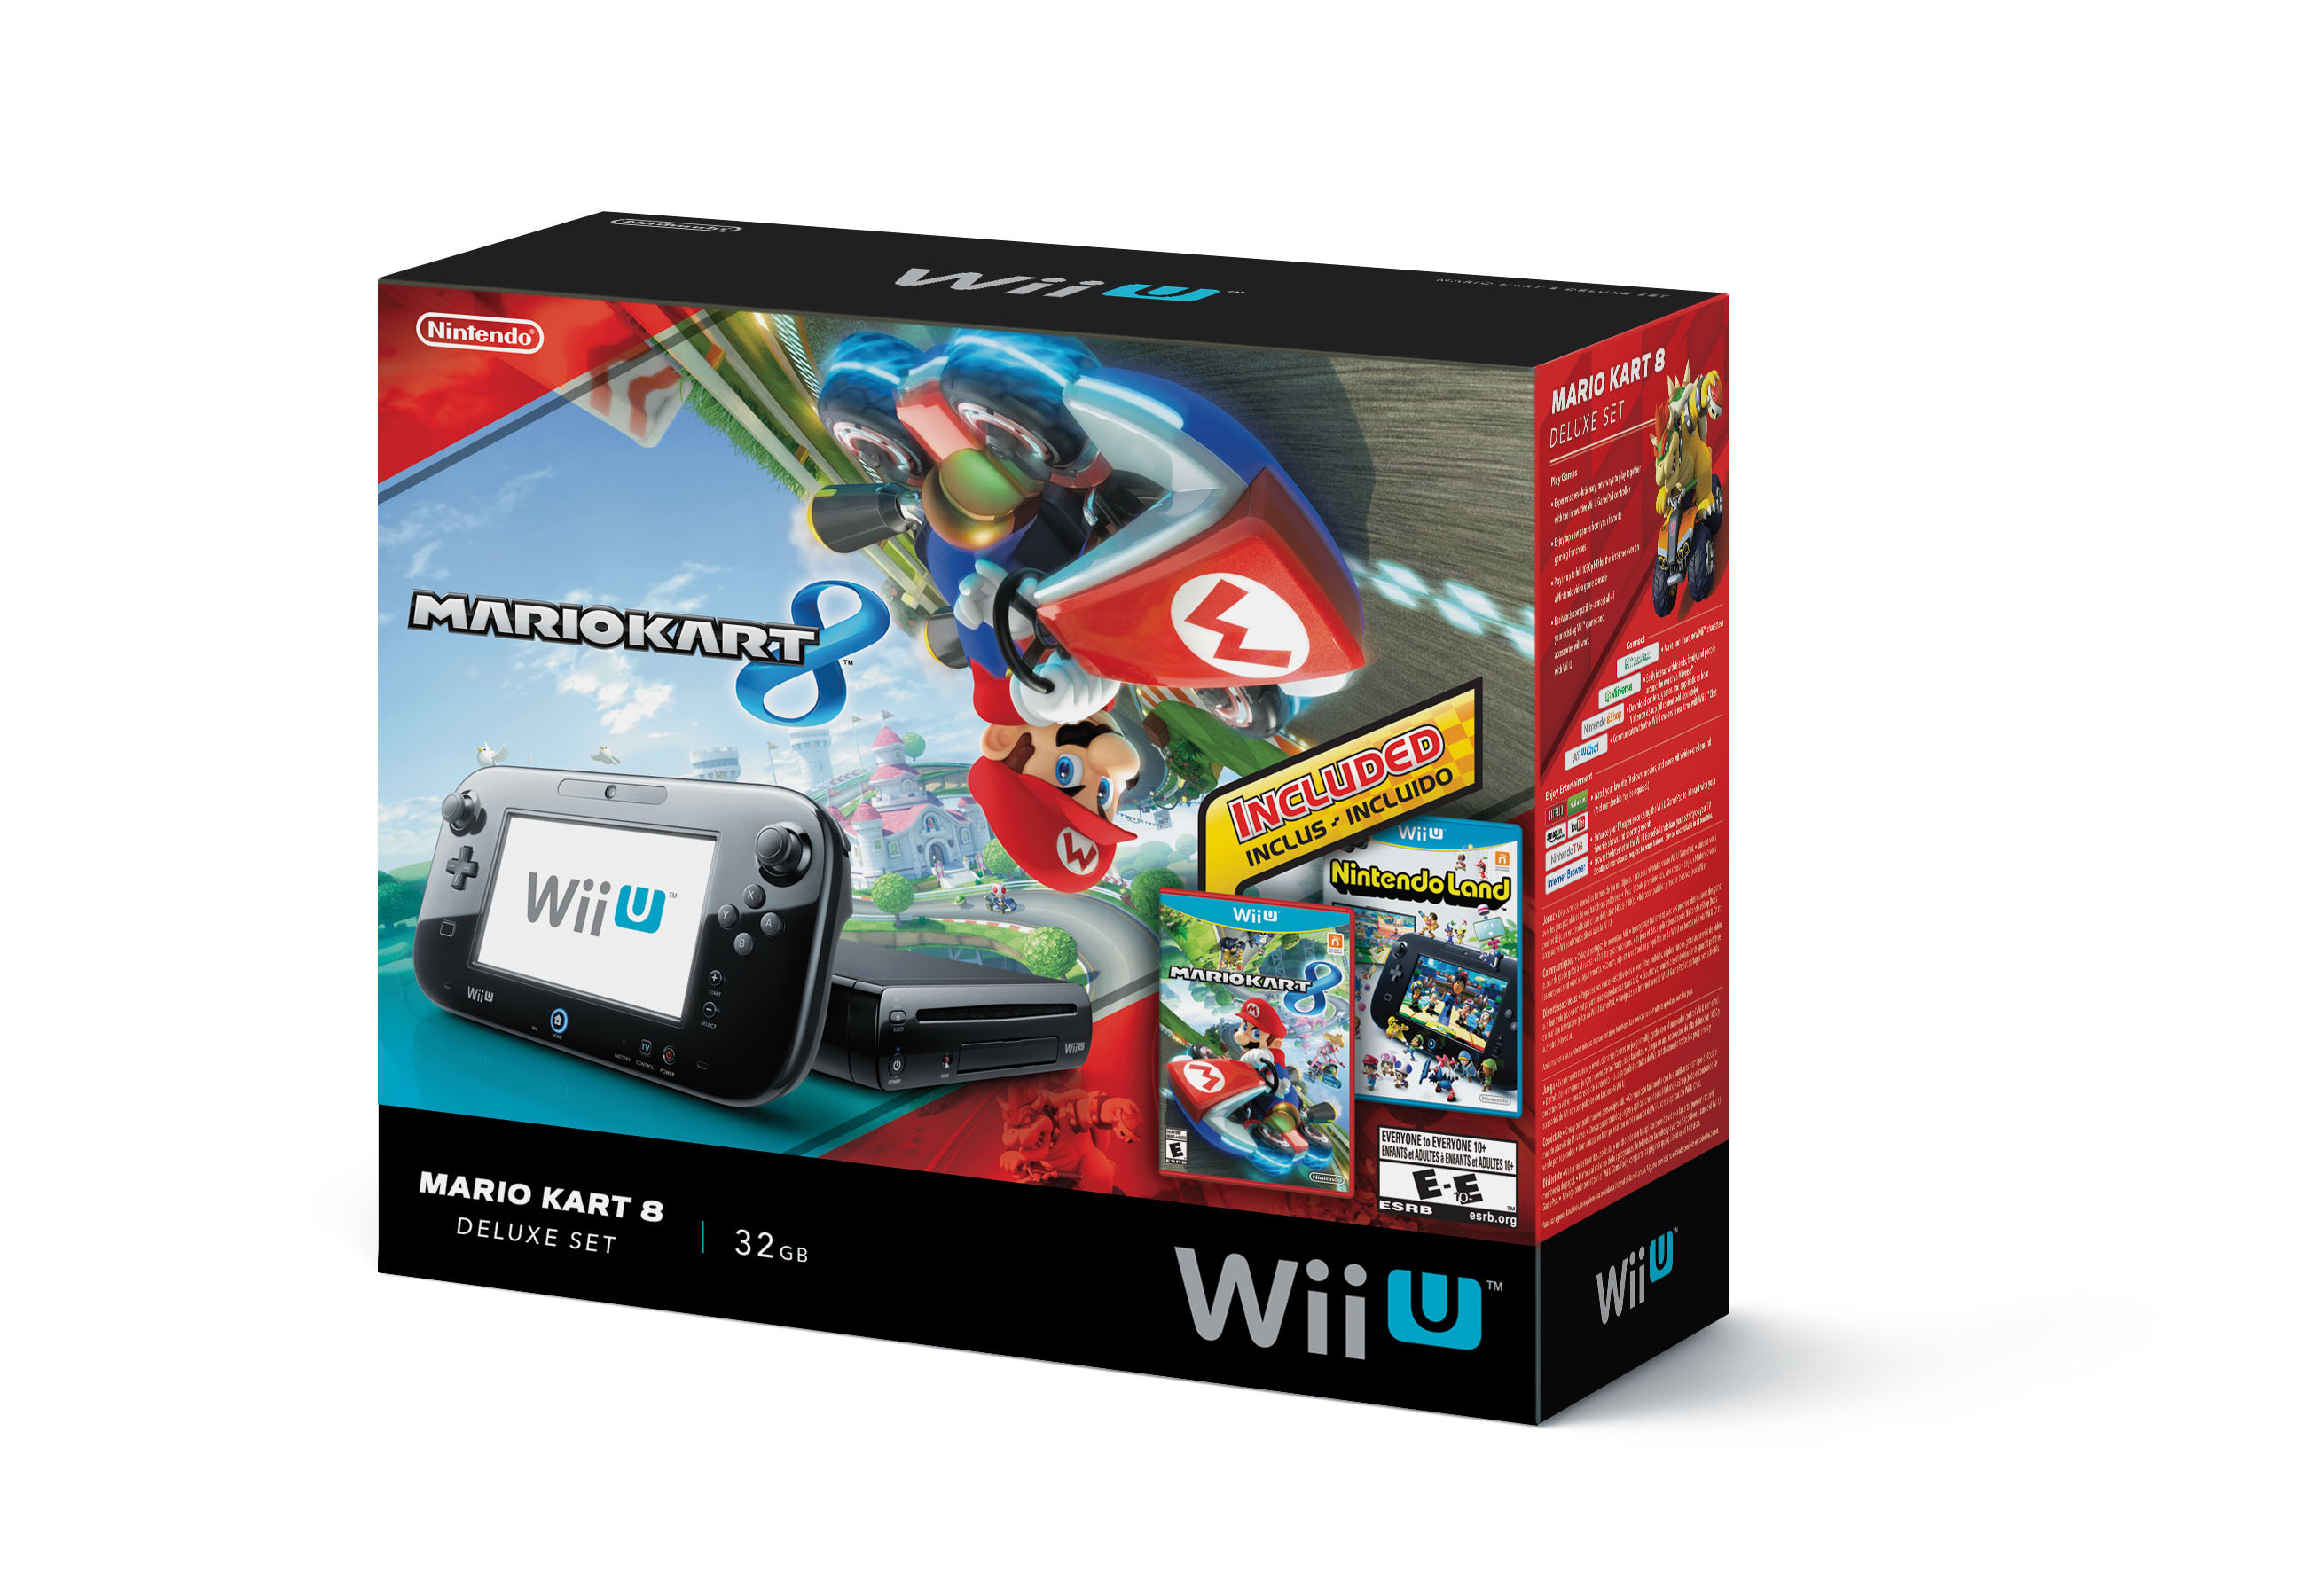 In mid-September, Walmart stores nationwide will offer a special-edition Wii U bundle that includes the console along with physical Mario Kart 8 and Nintendo Land games at a suggested retail price of $299.99. (Photo: Business Wire)